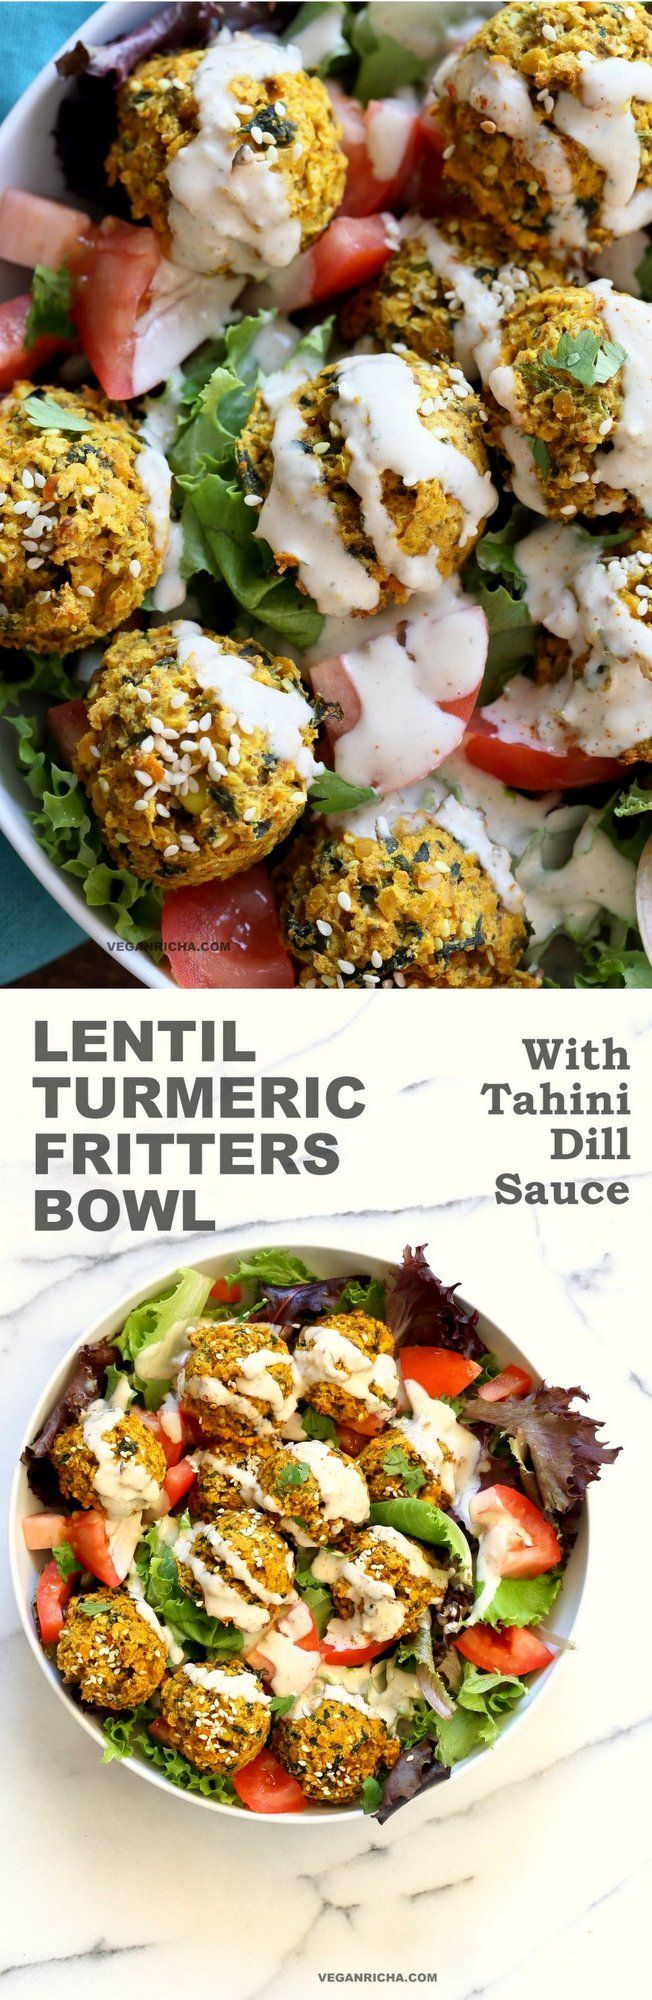 Turmeric Lentil Fritters Tomato Greens Bowl with Tahini Dill Sauce. Baked Seedy Golden Lentil fritters with greens, tomatoes and a tahini sauce  VeganRicha.com